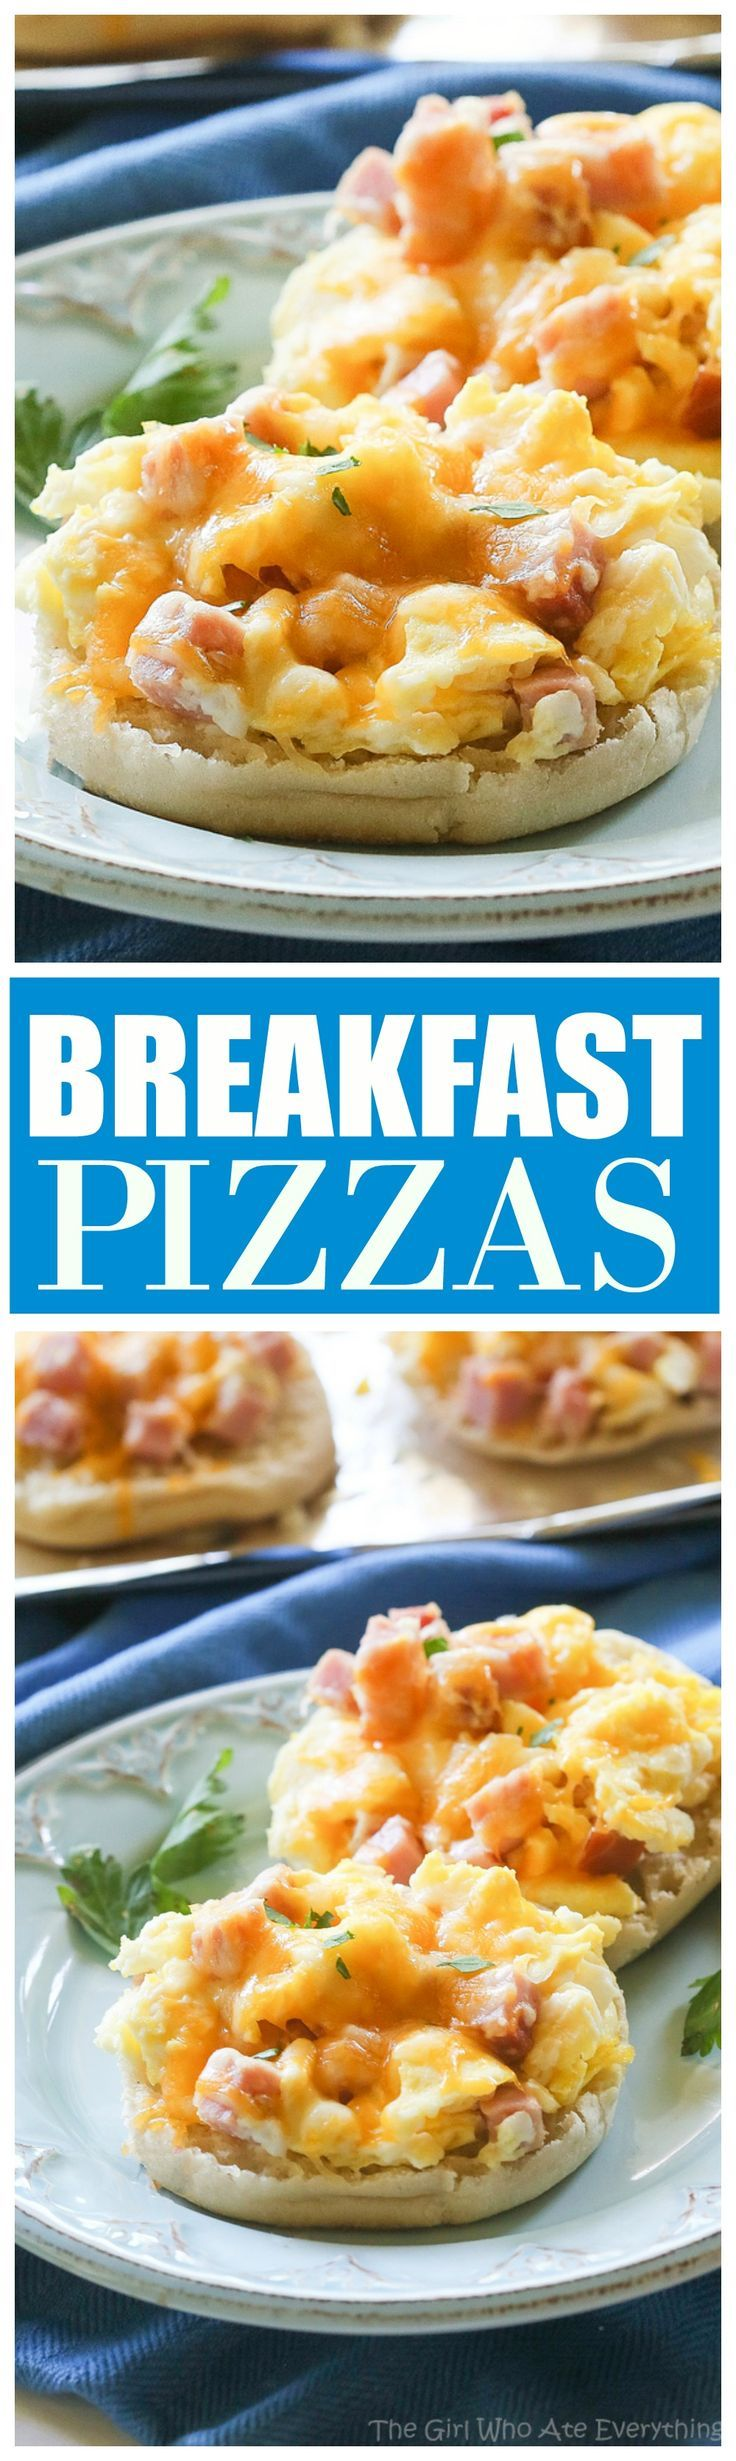 Breakfast Pizzas - scrambled eggs piled on English muffins and even freezer friendly. http://the-girl-who-ate-everything.com